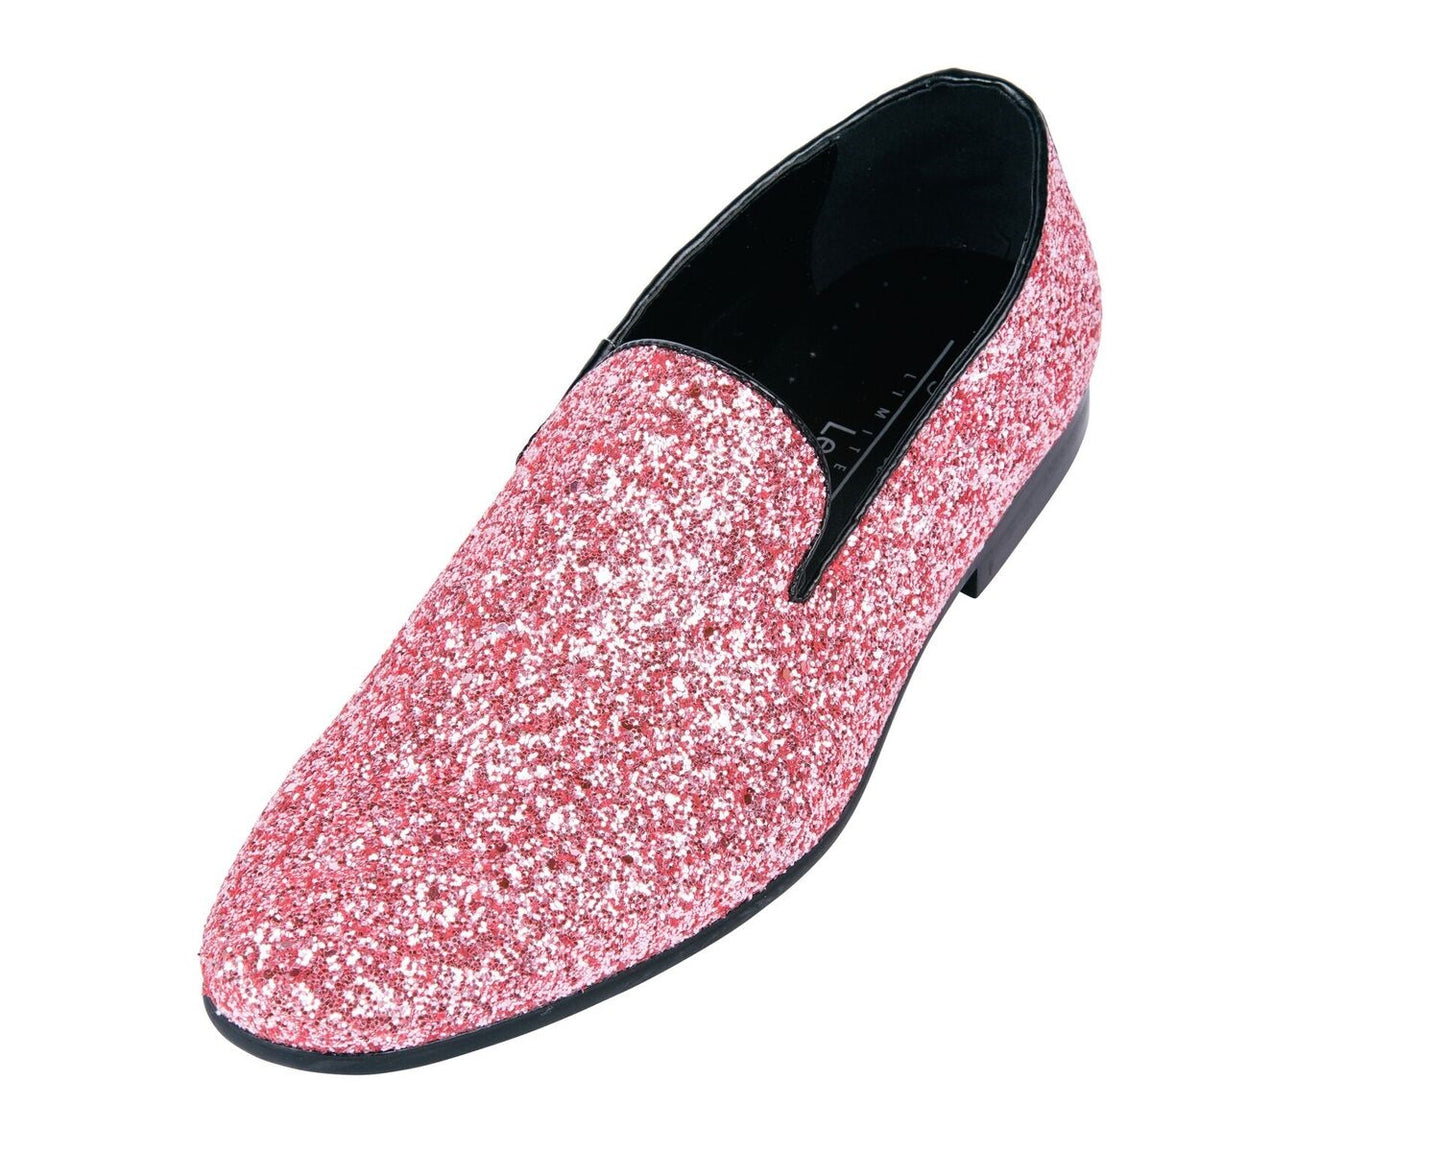 Pink Sparkle Loafer Shoes-The Shoe Square